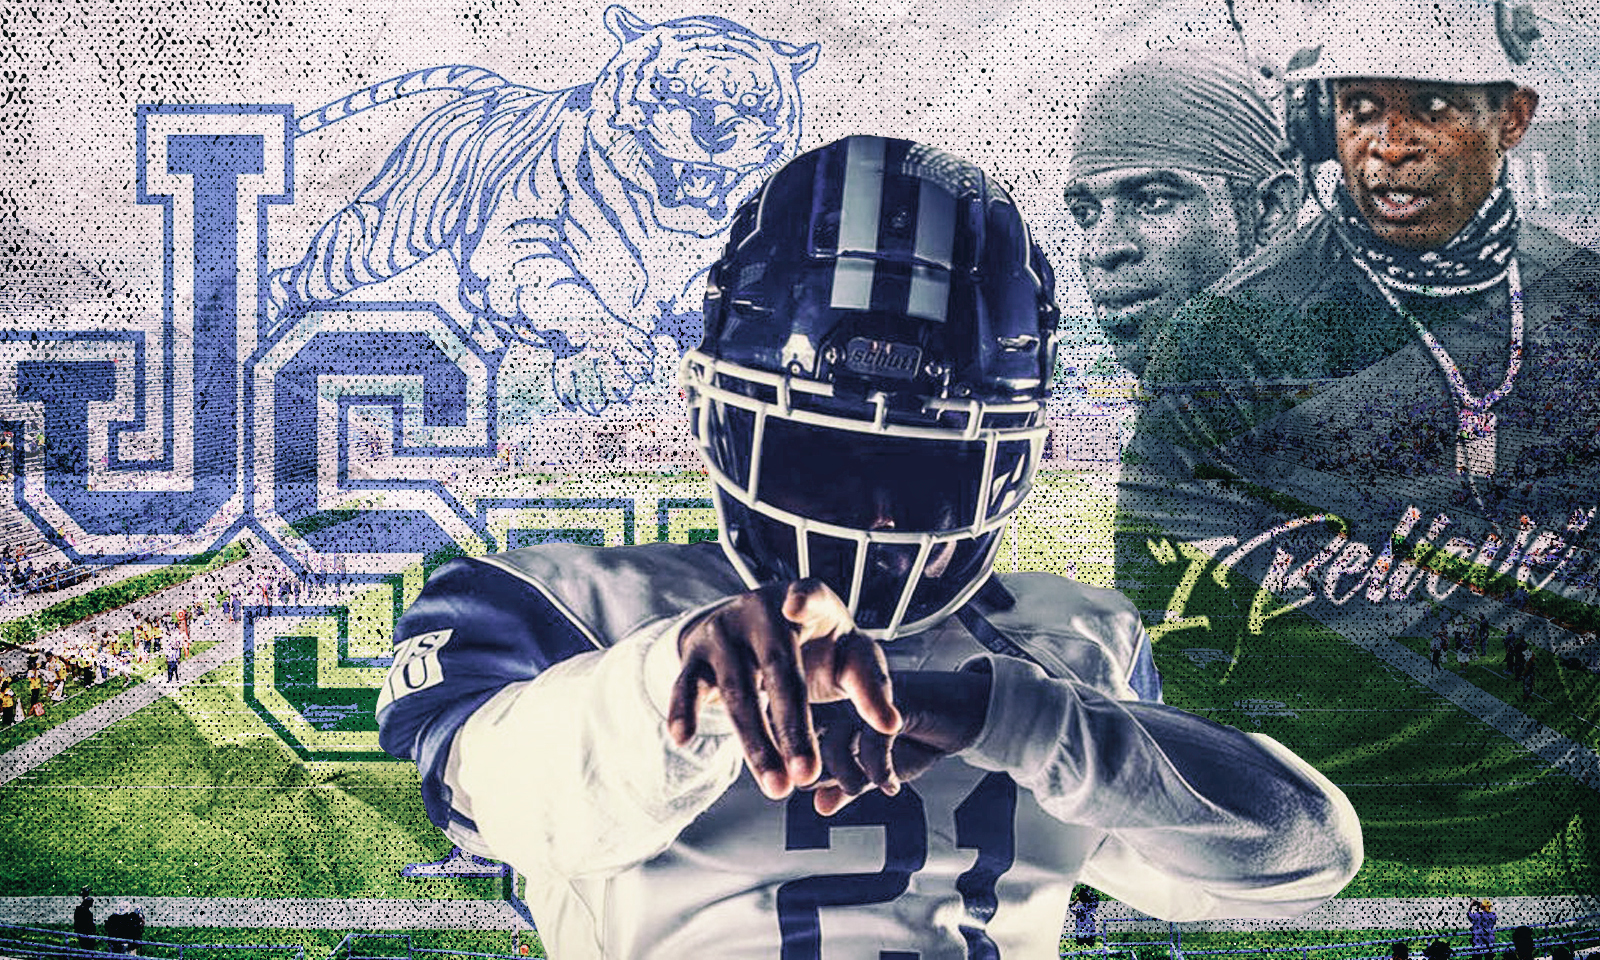 Jackson State National Signing Day